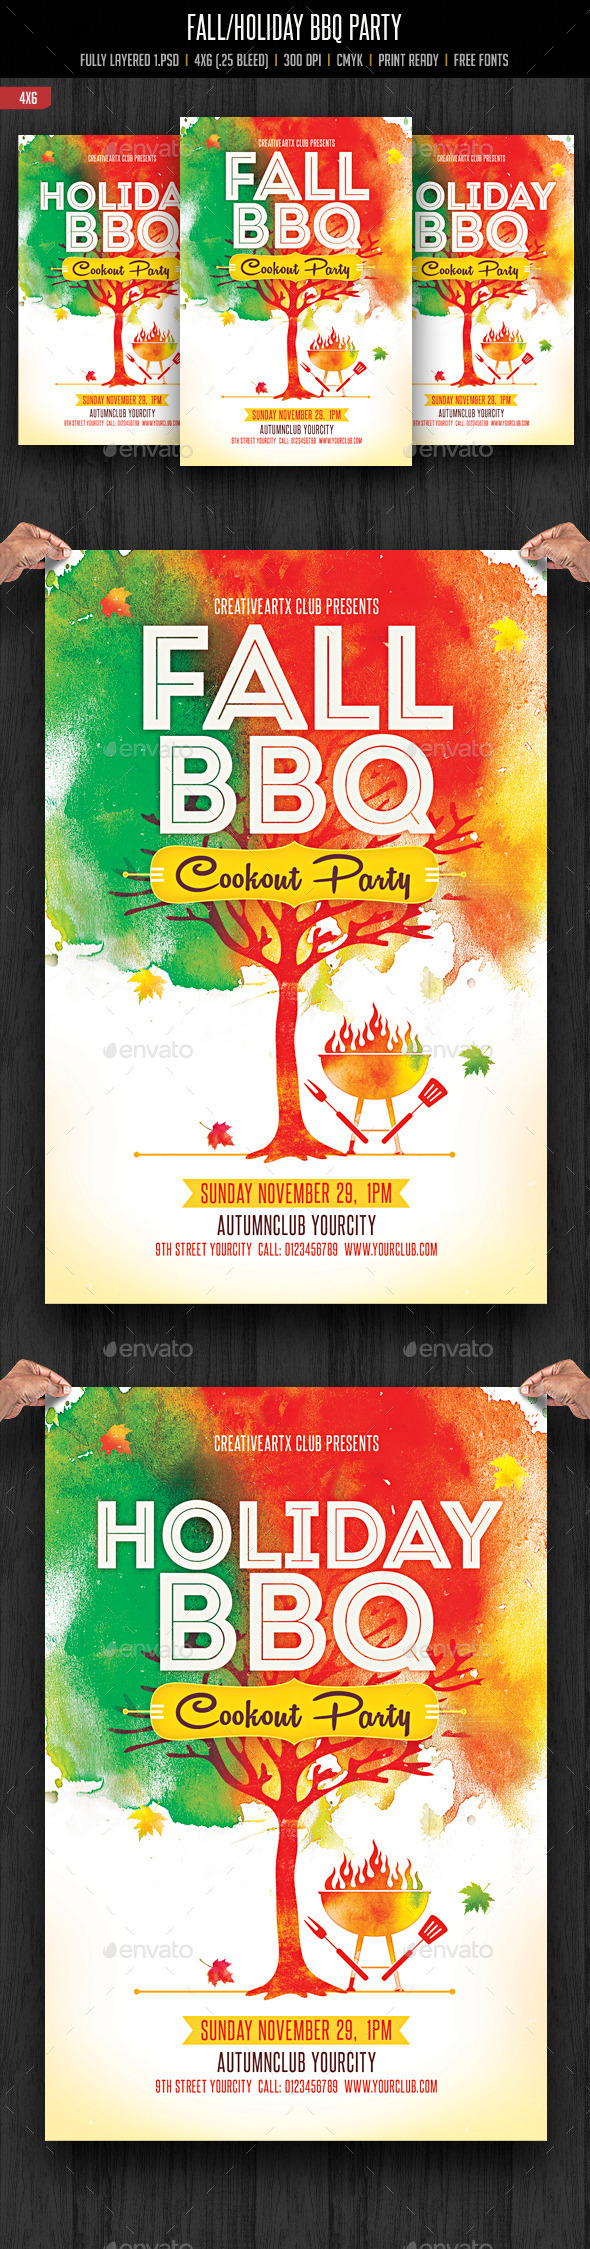 Fall/Holiday BBQ Party Flyer - Clubs & Parties Events